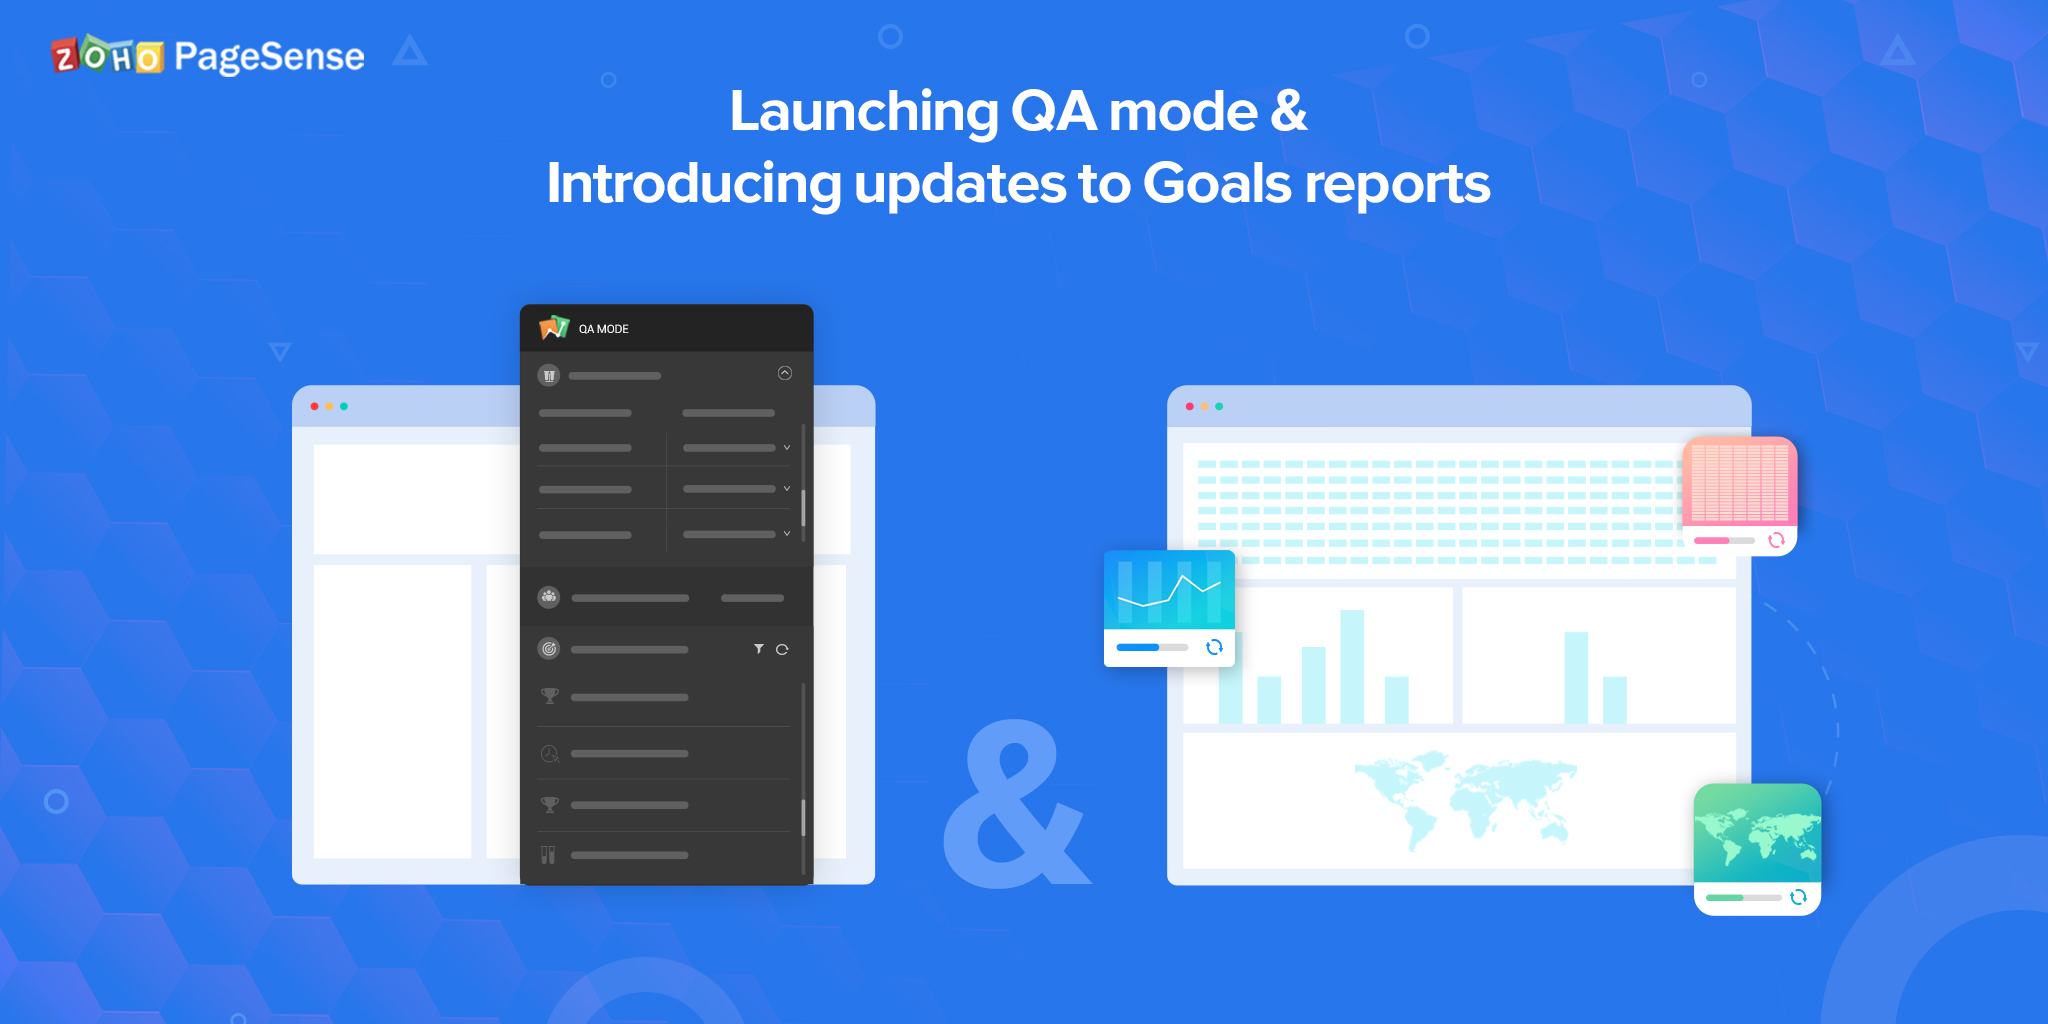 QA Mode and Goals Reports Update in PageSense